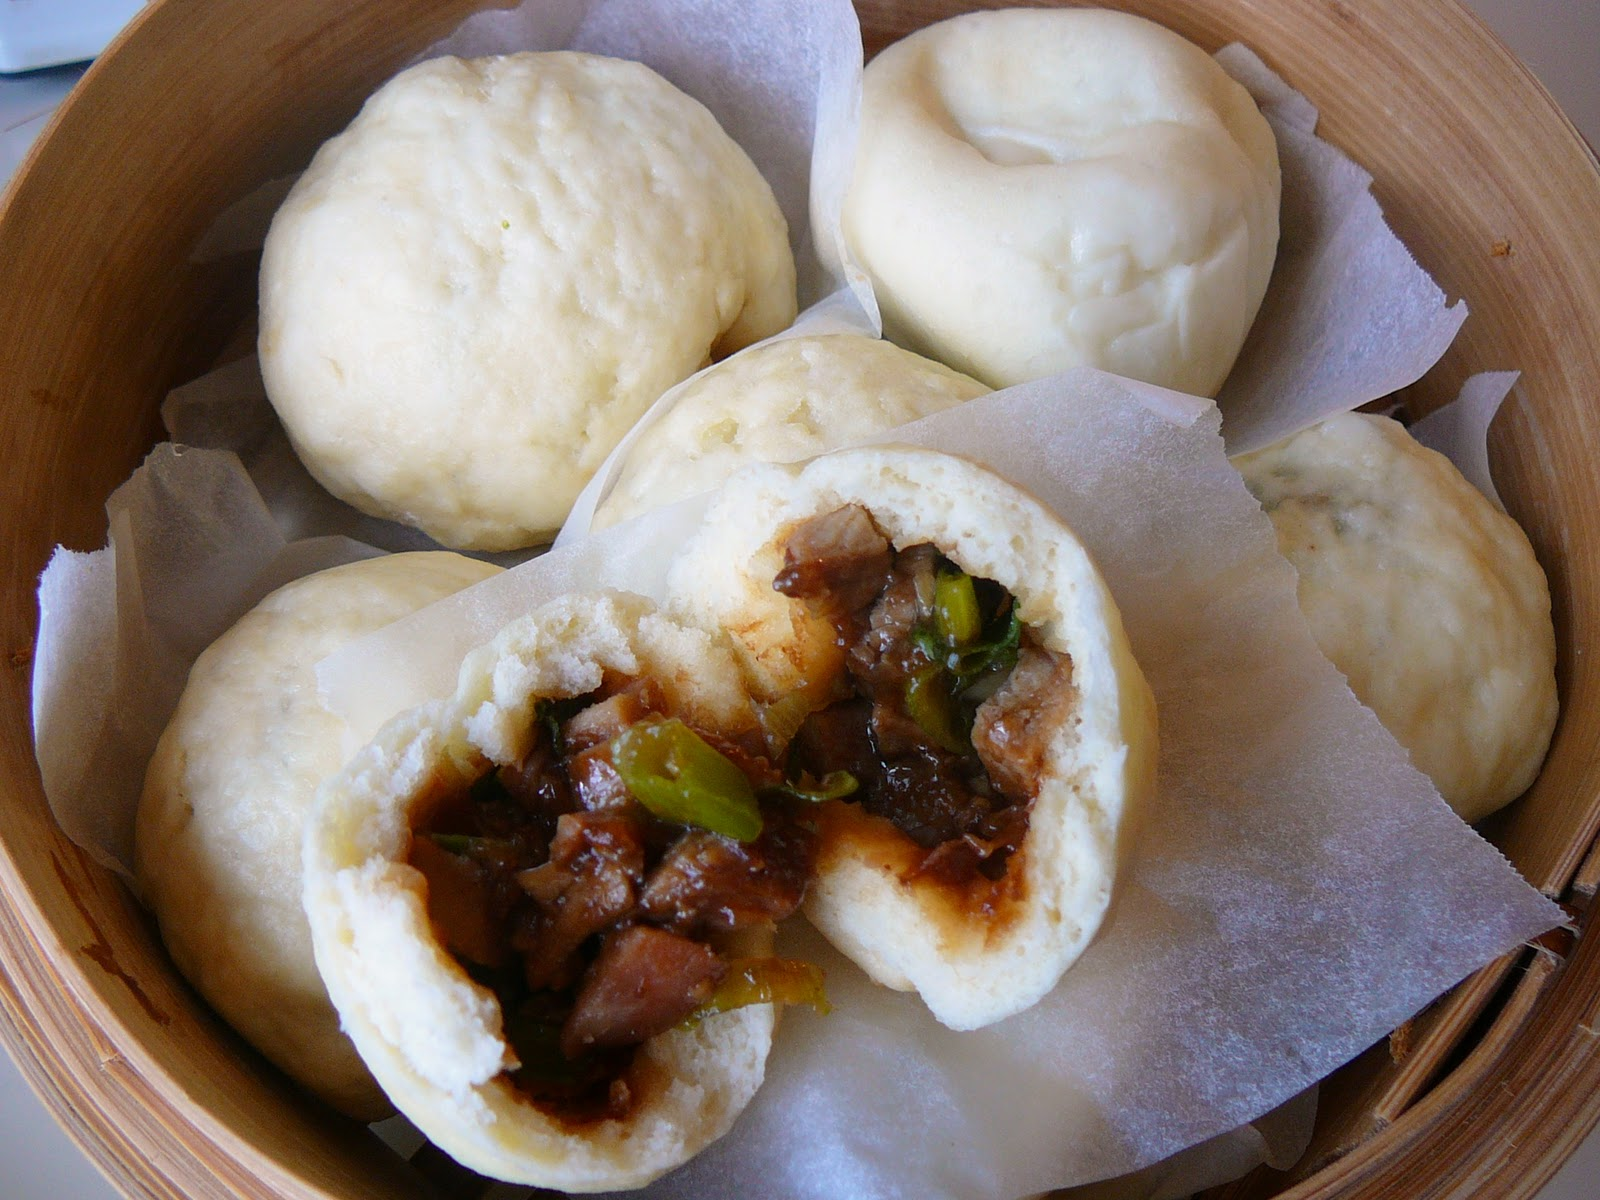 source: http://www.recipeshubs.com/chinese-steamed-lotus-leaf-buns/29261